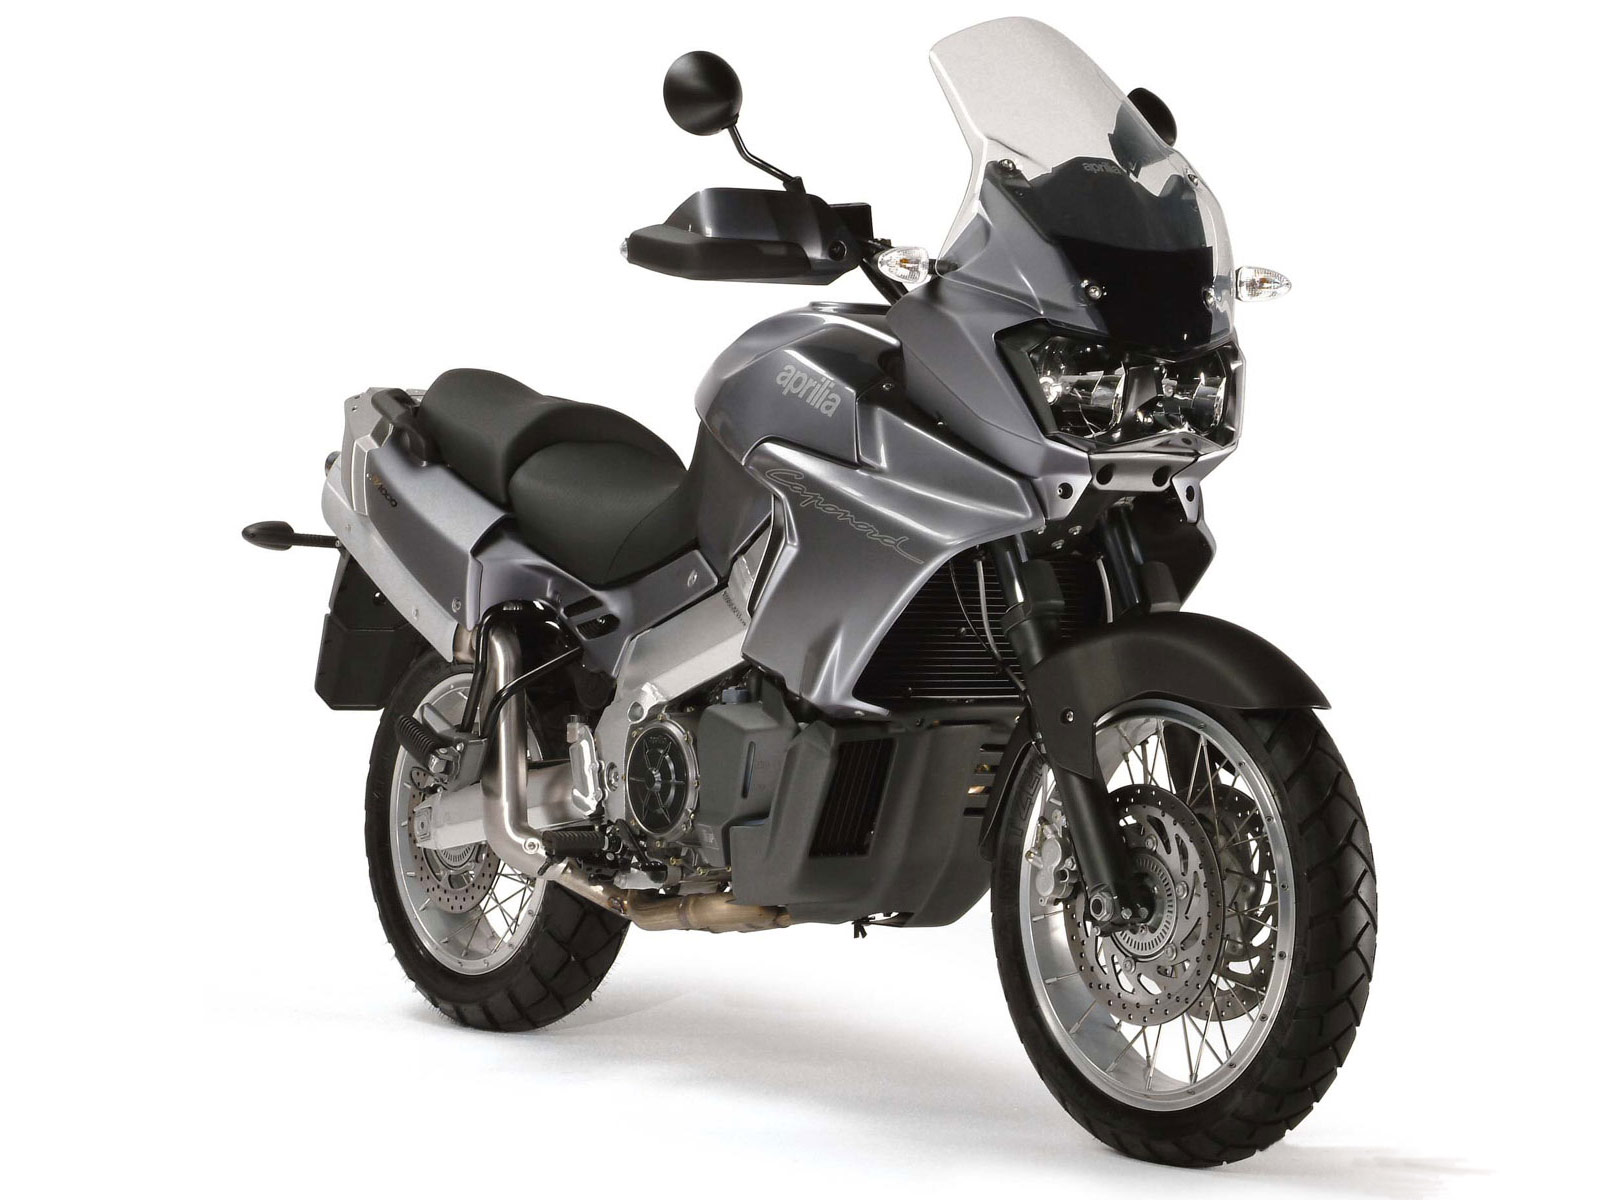 gambar motor aprilia caponord etv 1000 2004 specifications. Black Bedroom Furniture Sets. Home Design Ideas